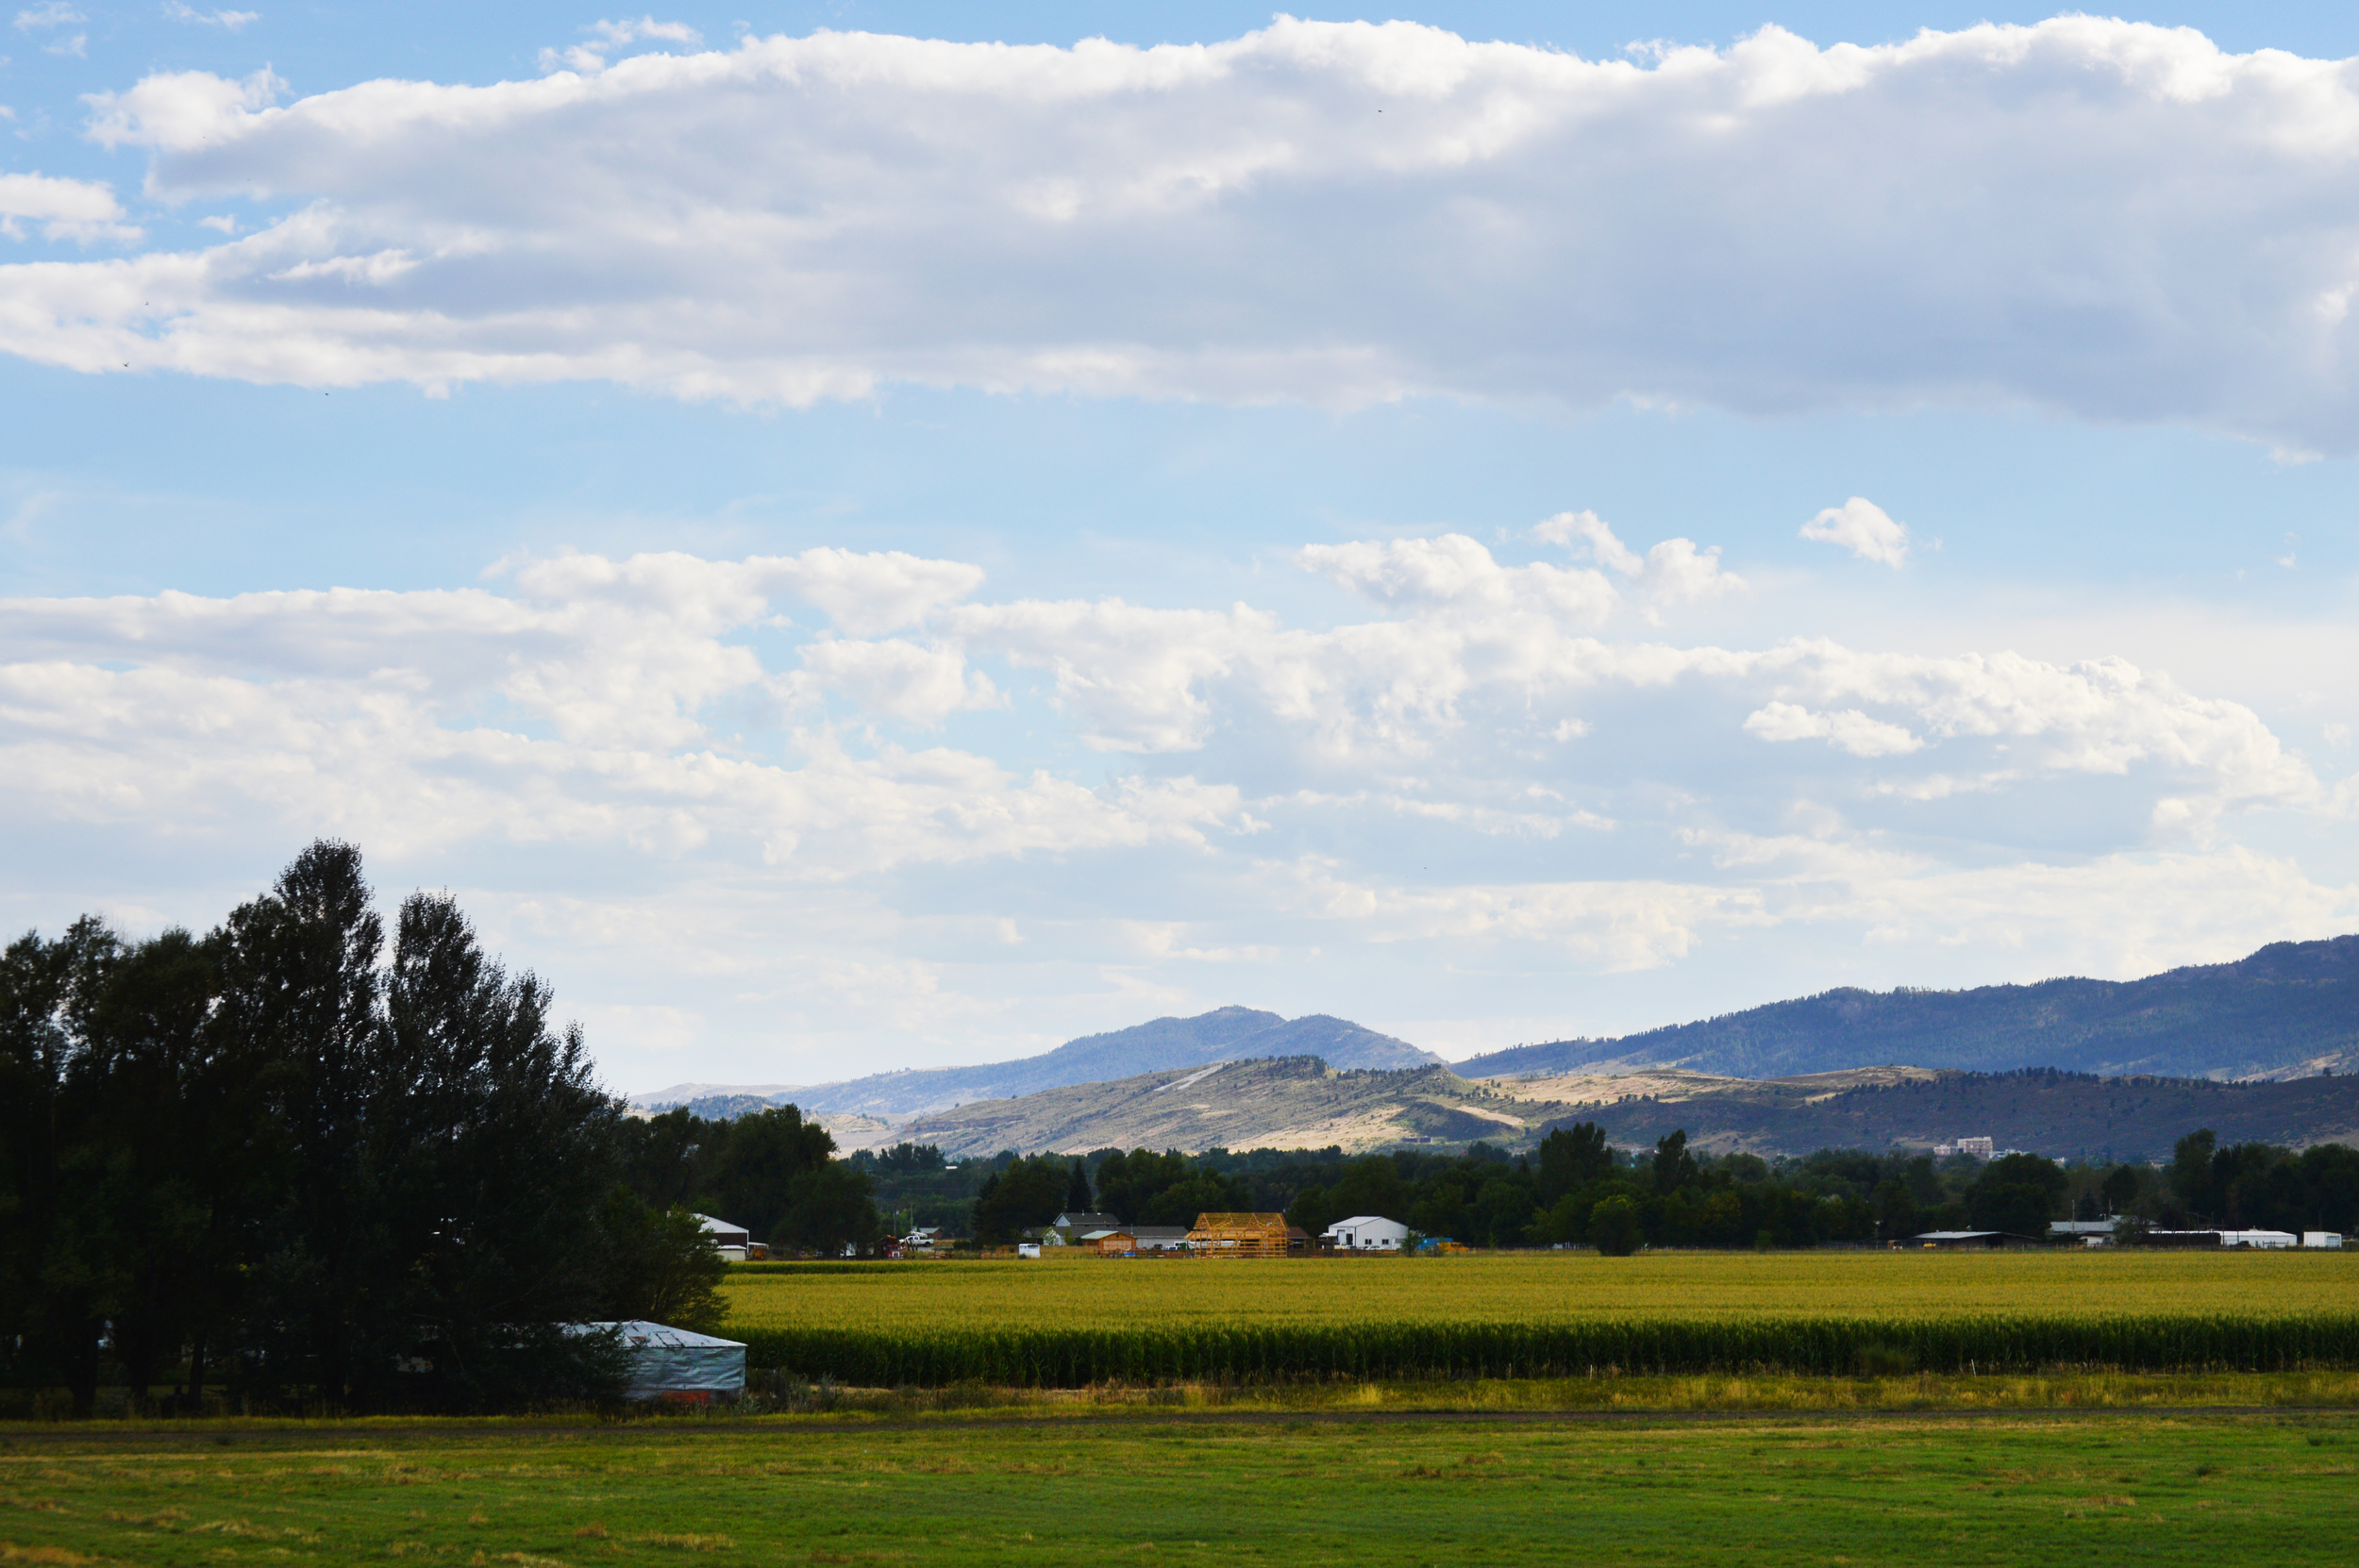 Own a piece of this land - Poudre Valley Community Farms - a land cooperative.